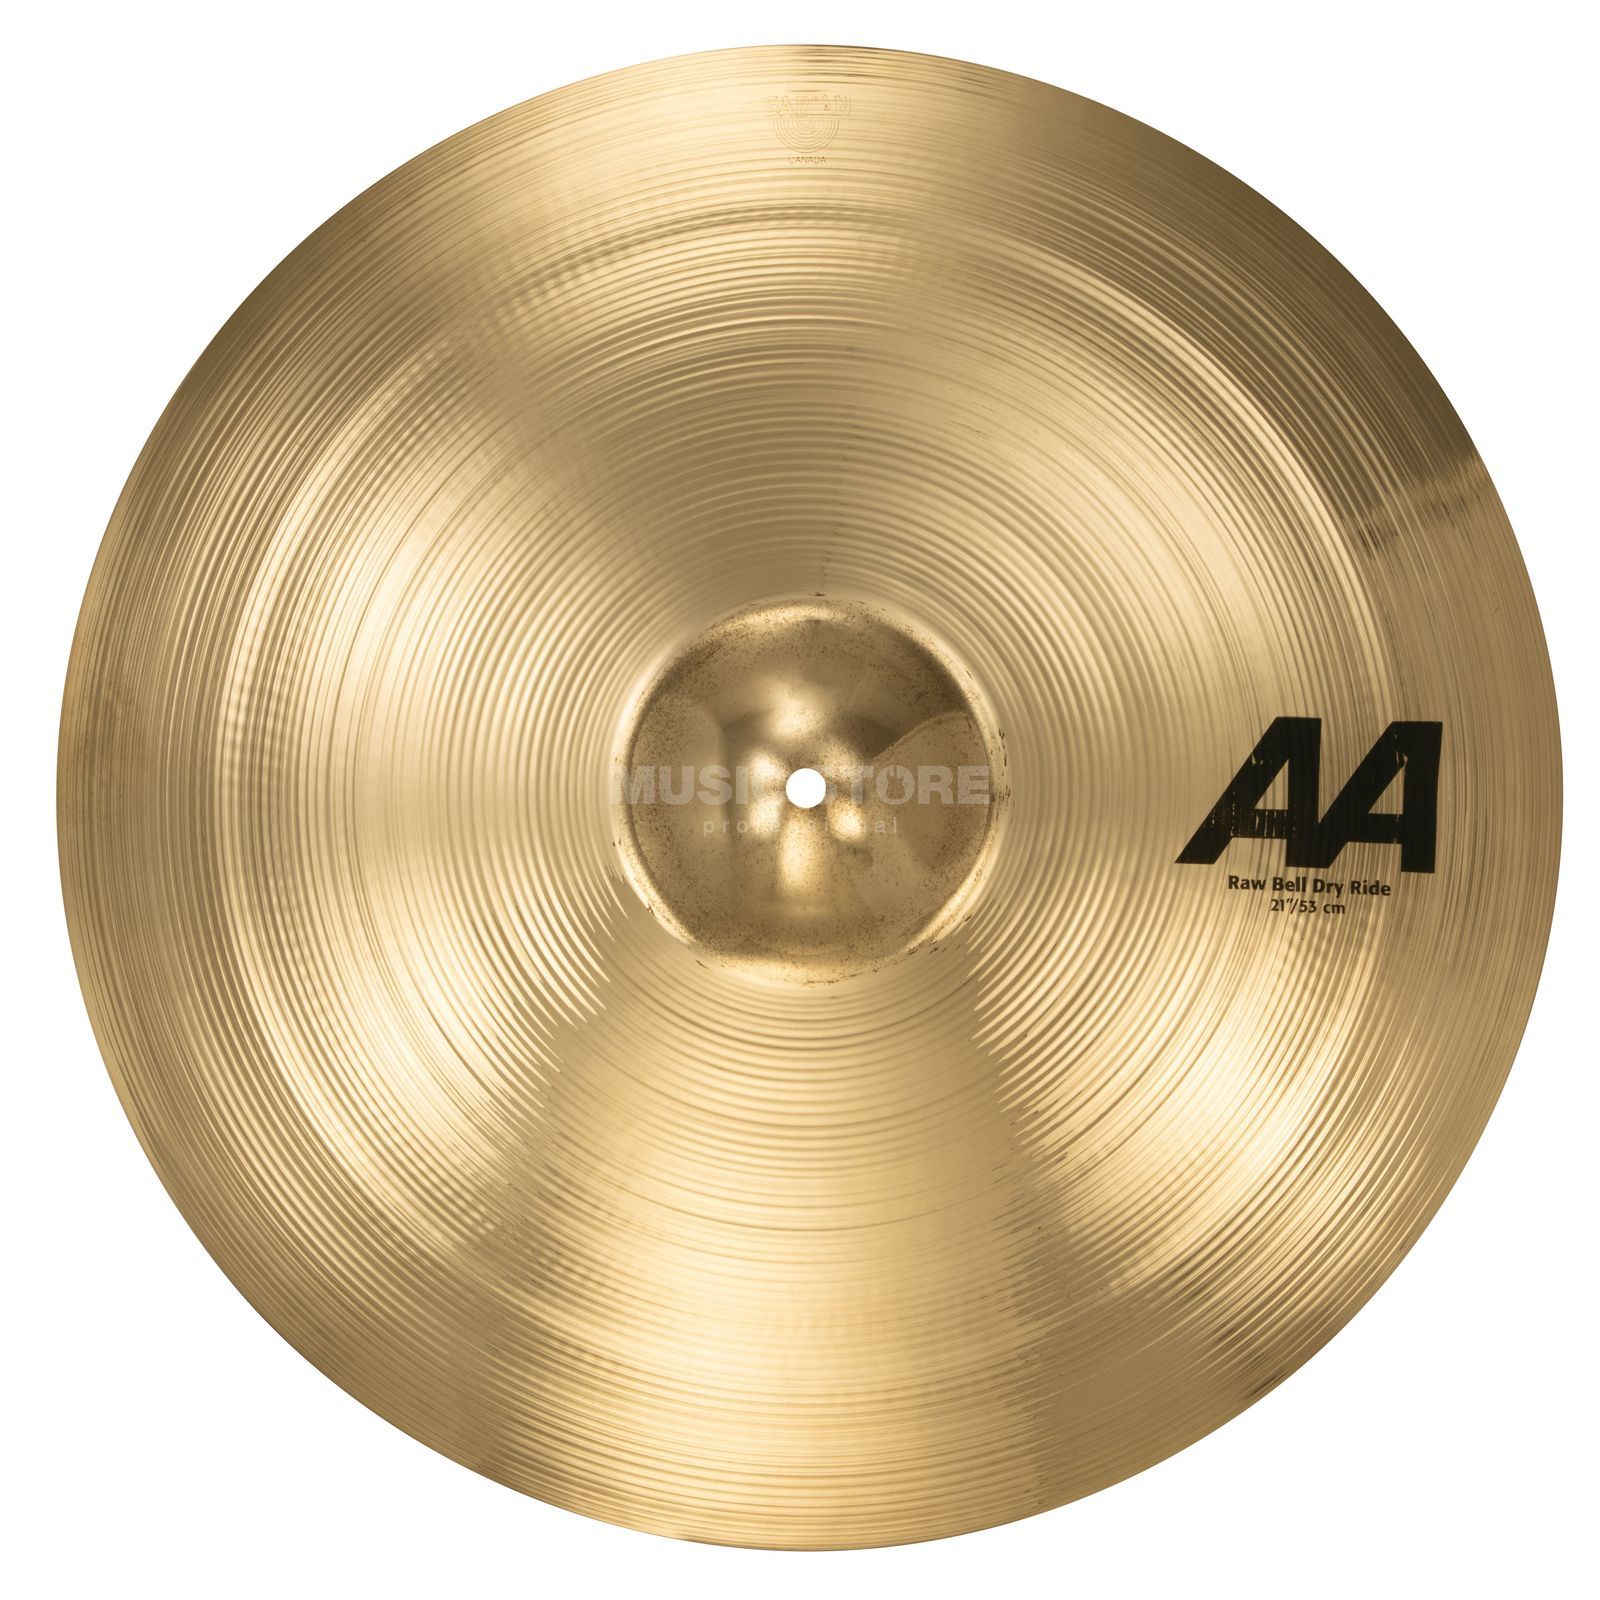 "Sabian AA Raw Bell Dry Ride 21"" Brilliant Finish Produktbild"